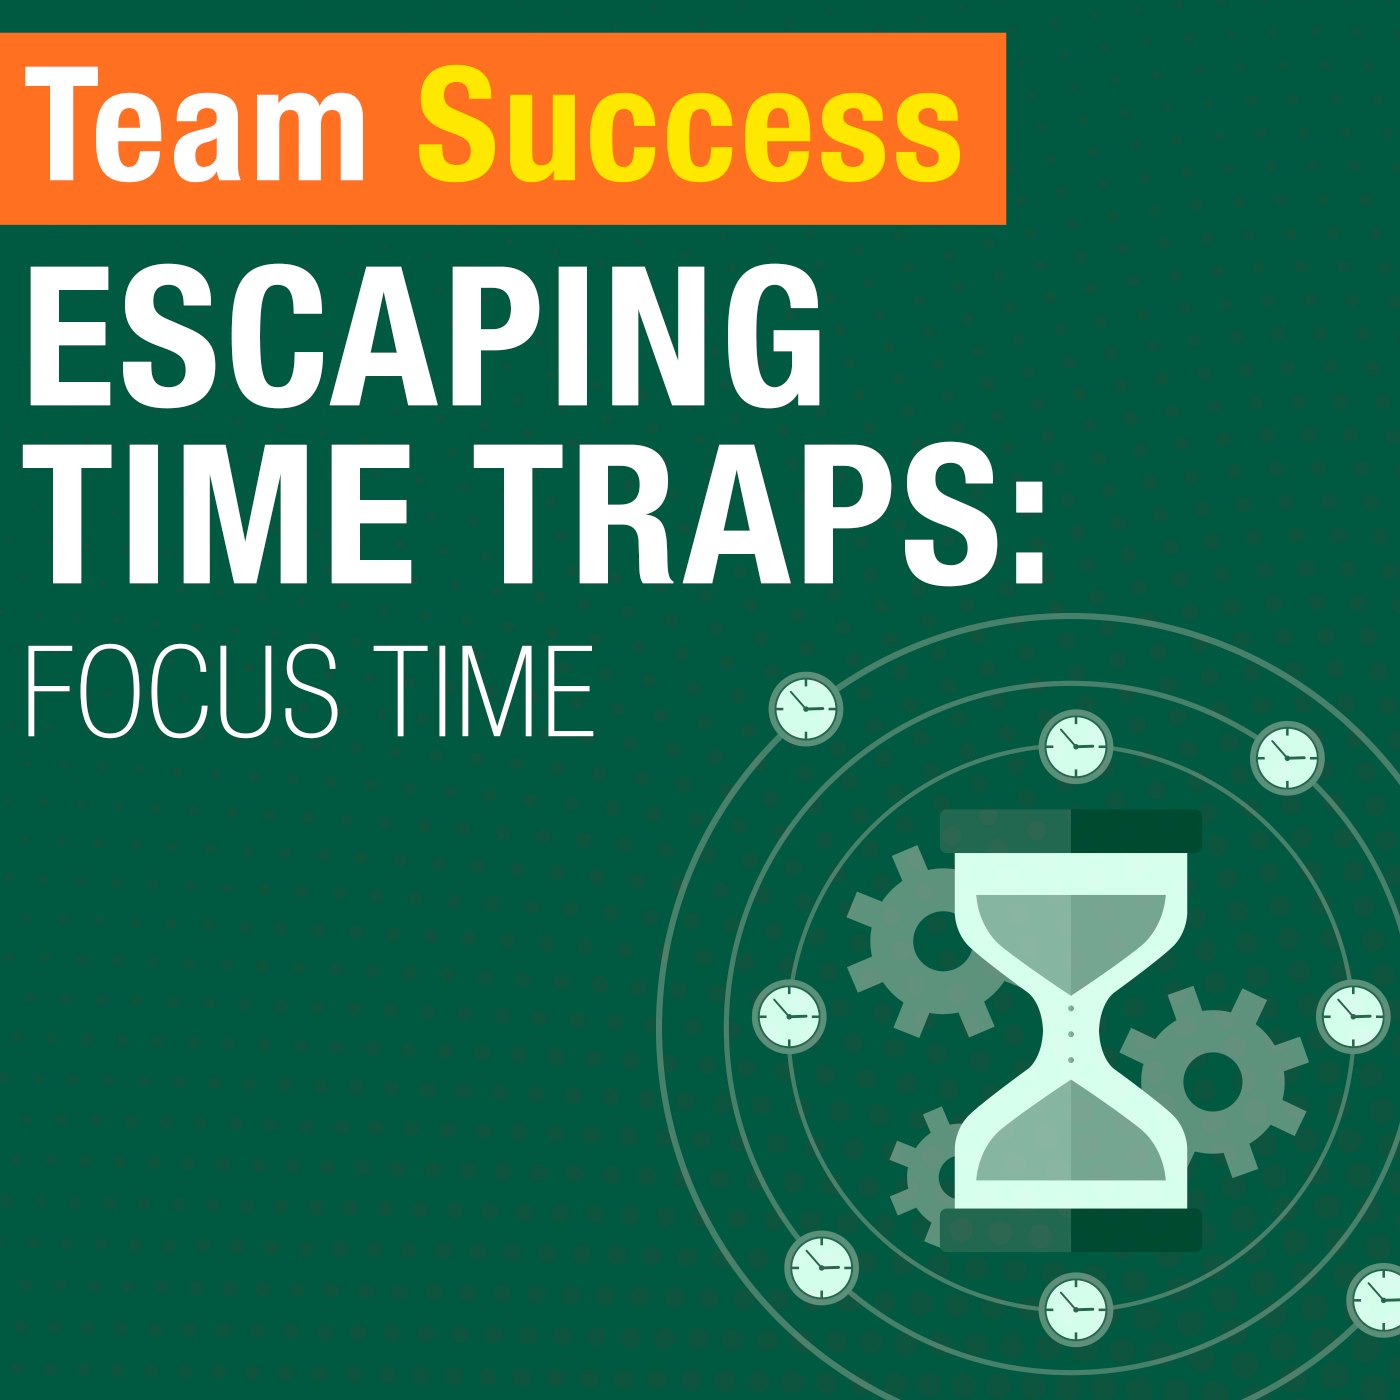 Escaping Time Traps Focus Time